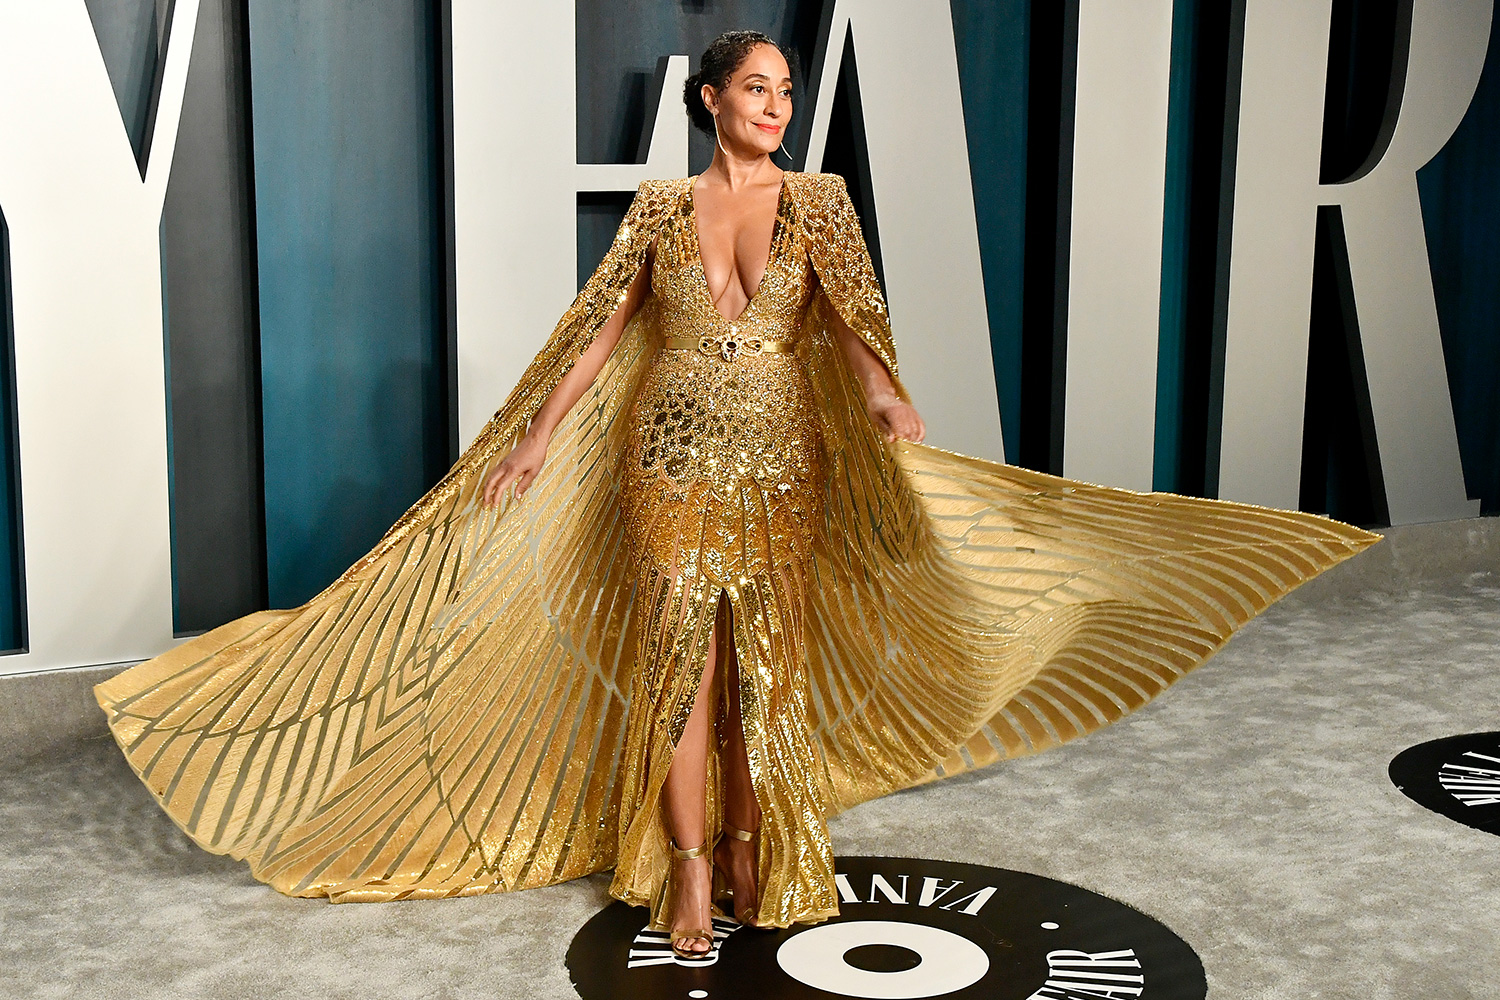 Tracee Ellis Ross attends the 2020 Vanity Fair Oscar Party hosted by Radhika Jones at Wallis Annenberg Center for the Performing Arts on February 09, 2020 in Beverly Hills, California